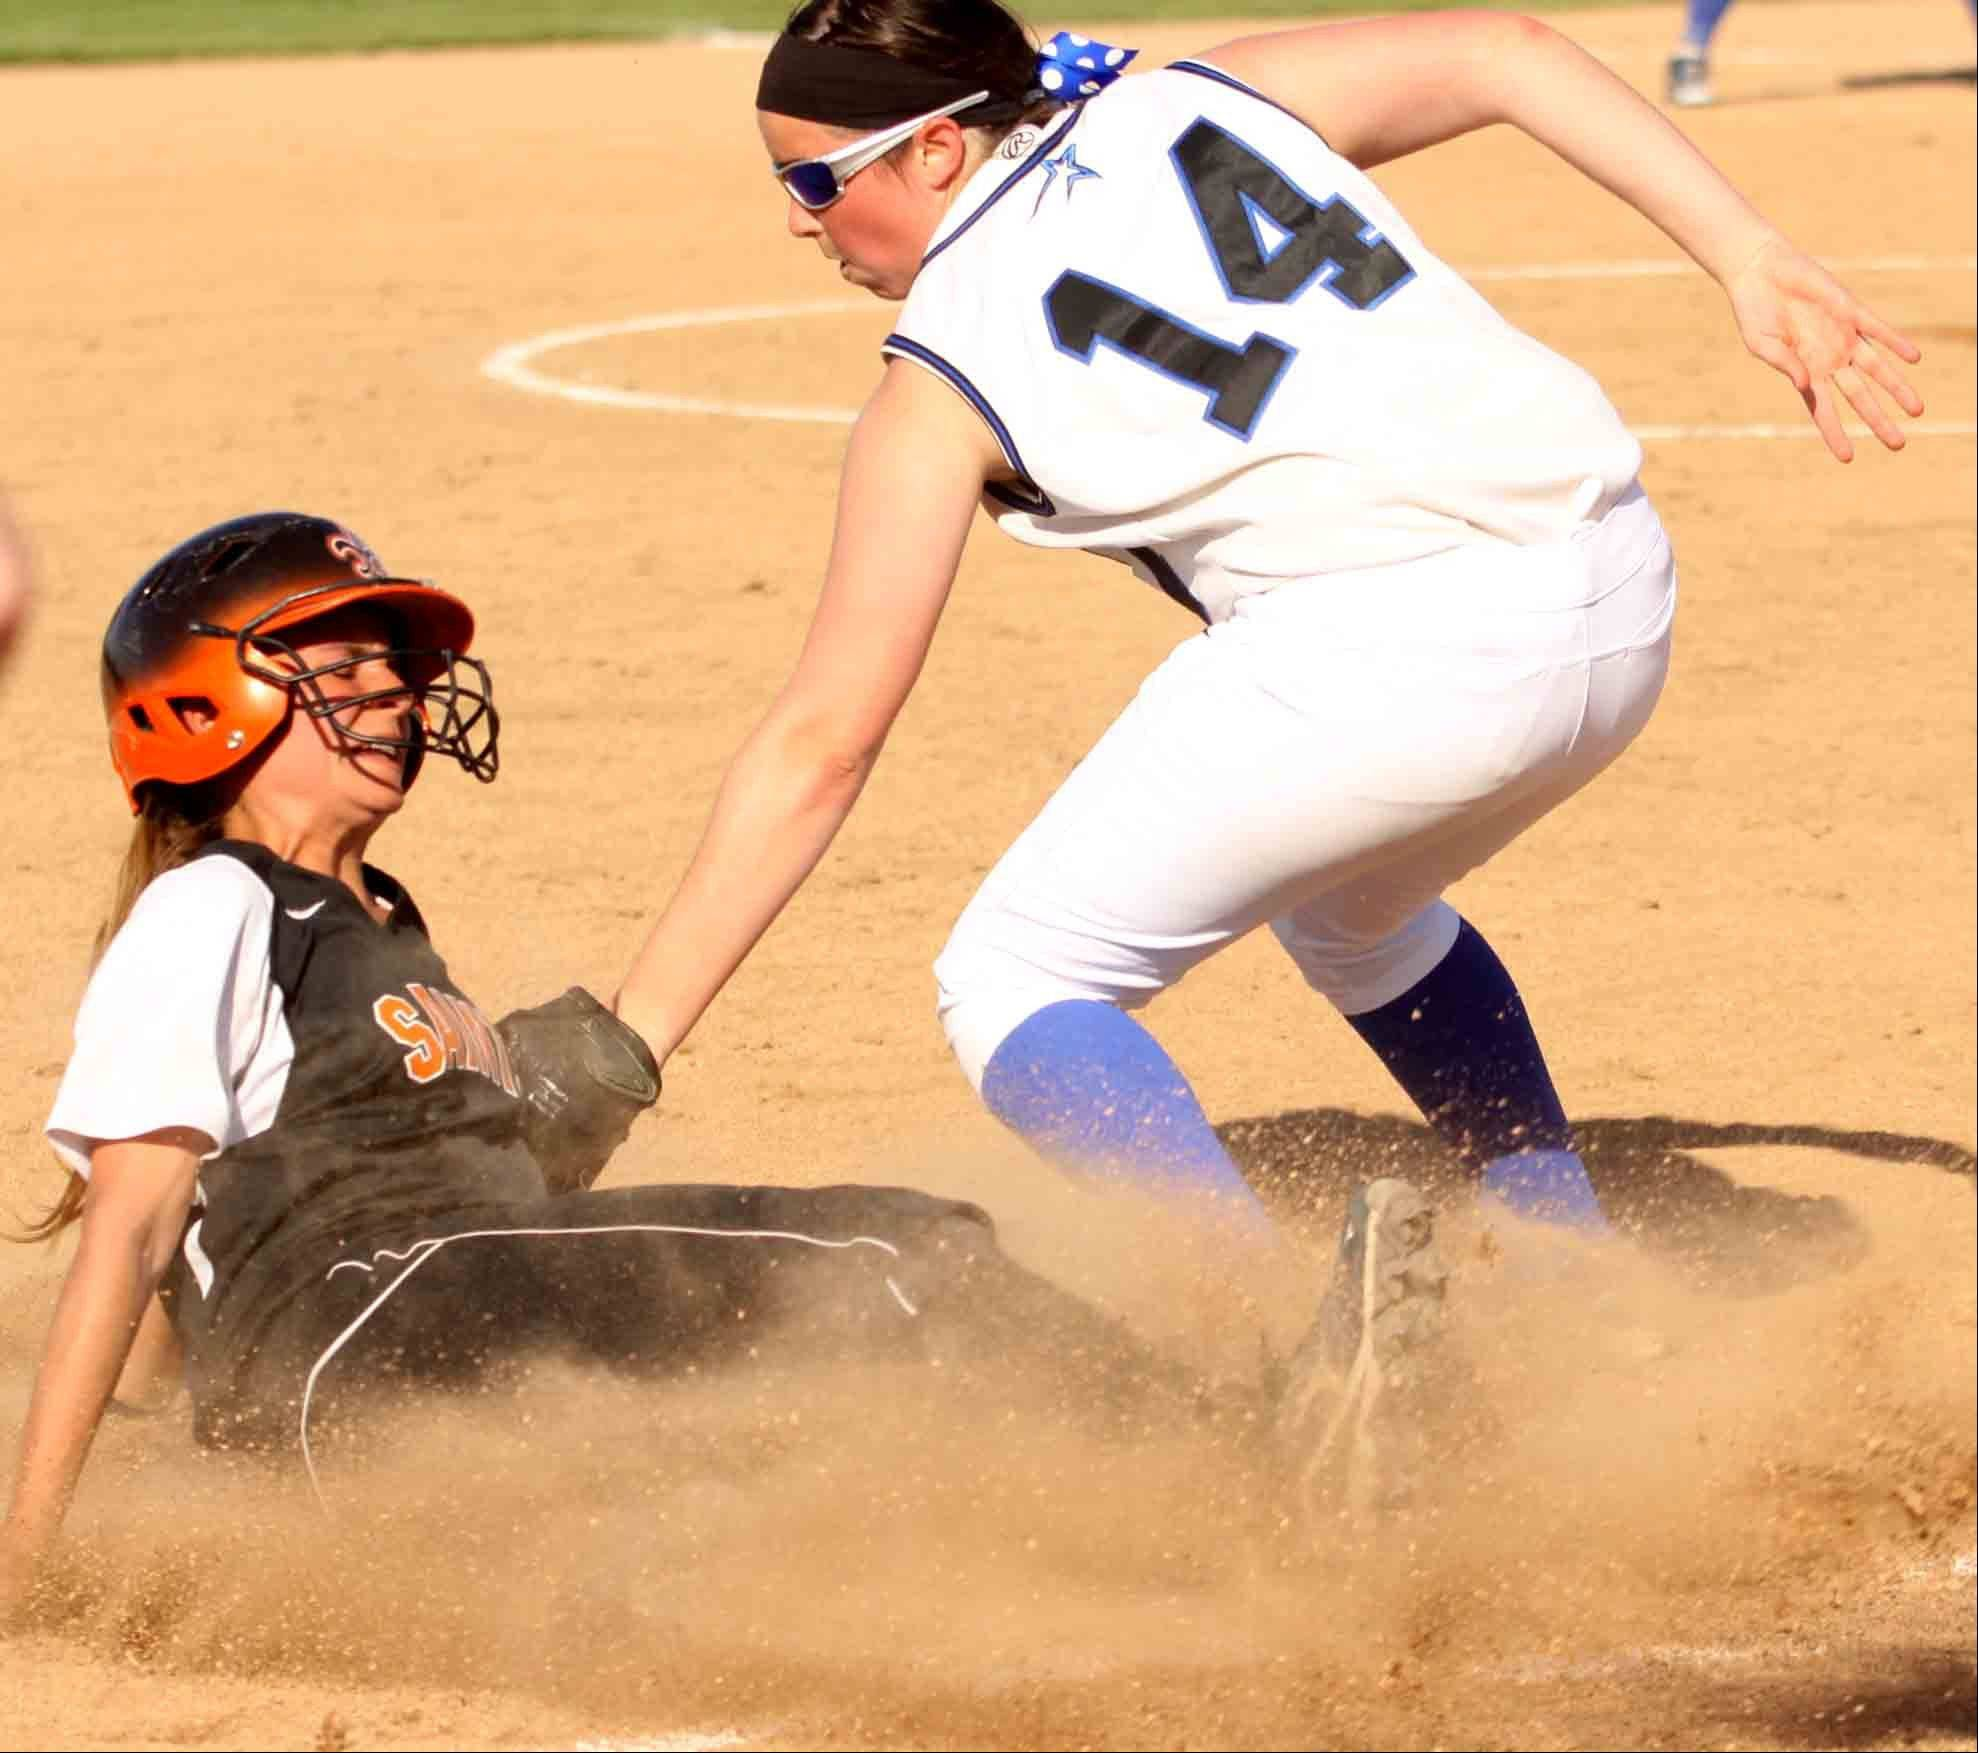 St Charles East's Lexi Perez slides in safe at third base as St Charles North's Erin Nemitz applies the tag during a varsity softball game at St Charles East on Tuesday afternoon.